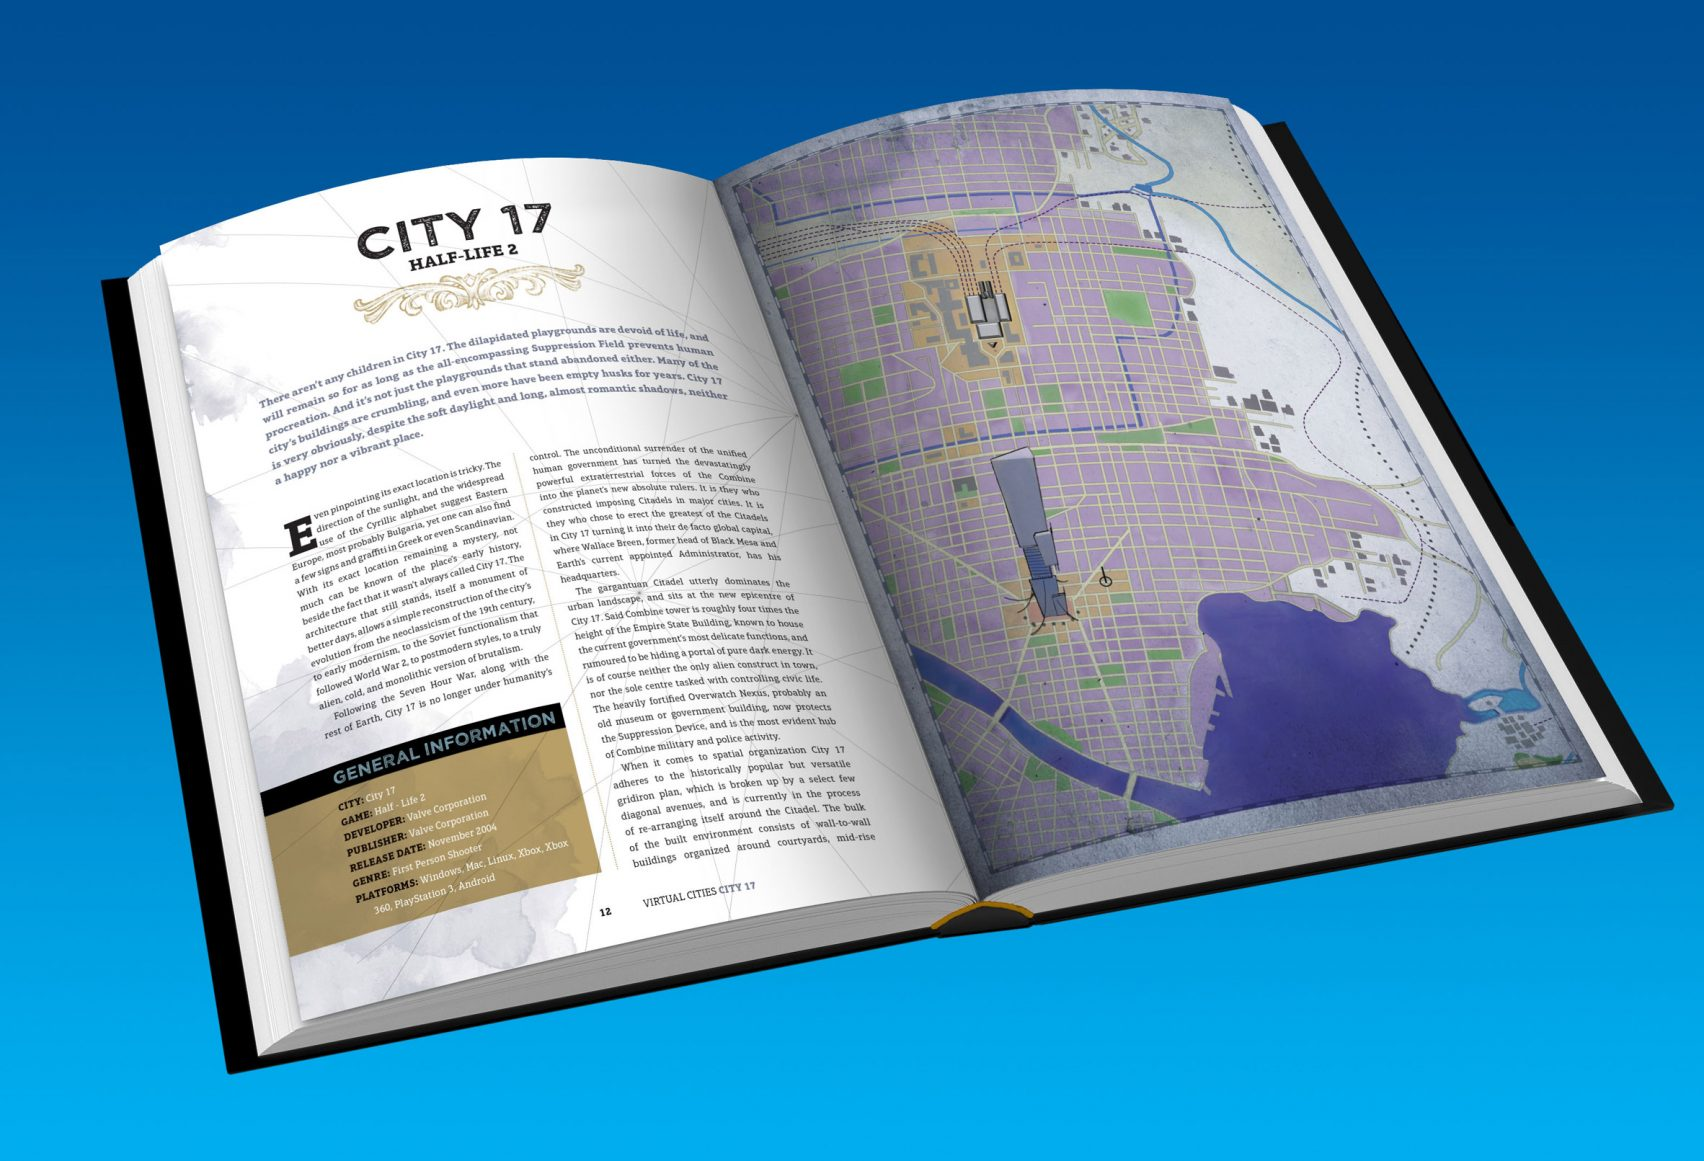 Virtual Cities: an Atlas & Exploration of Video Game Cities